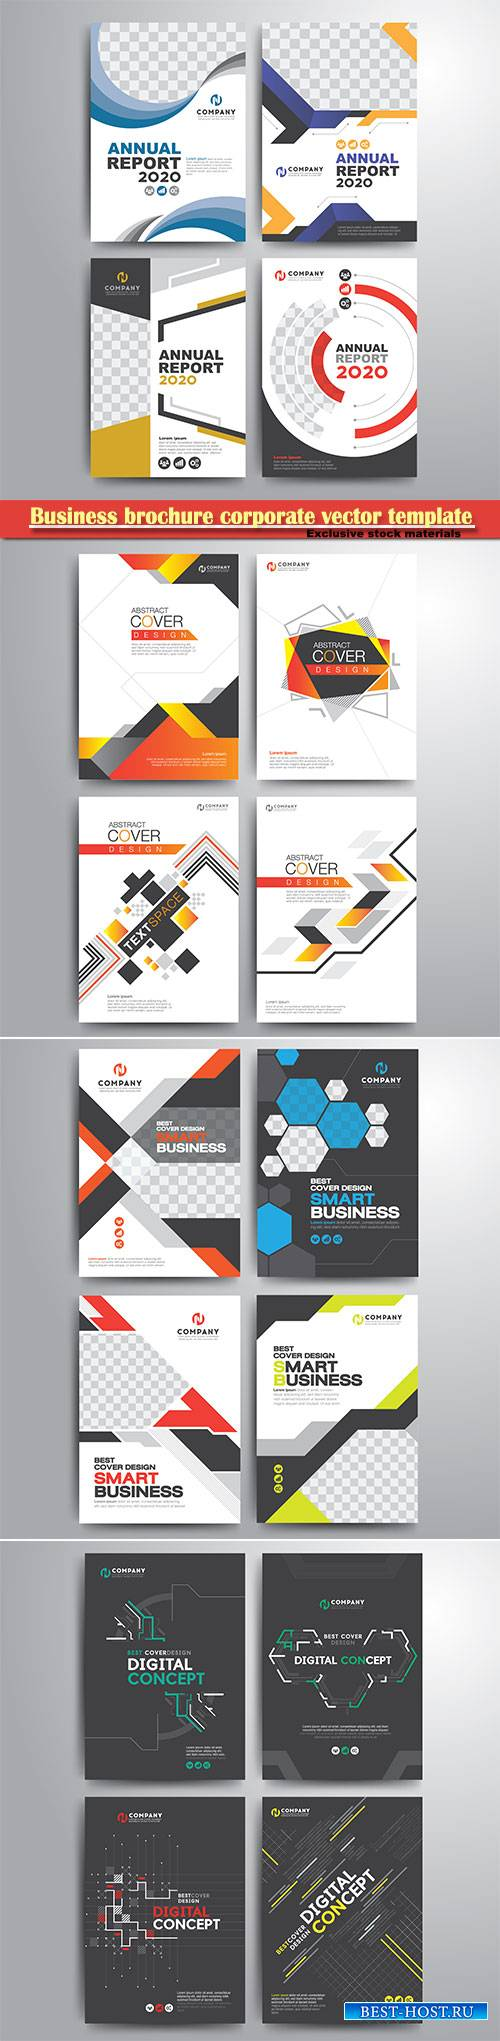 Business brochure corporate vector template, magazine flyer mockup # 10